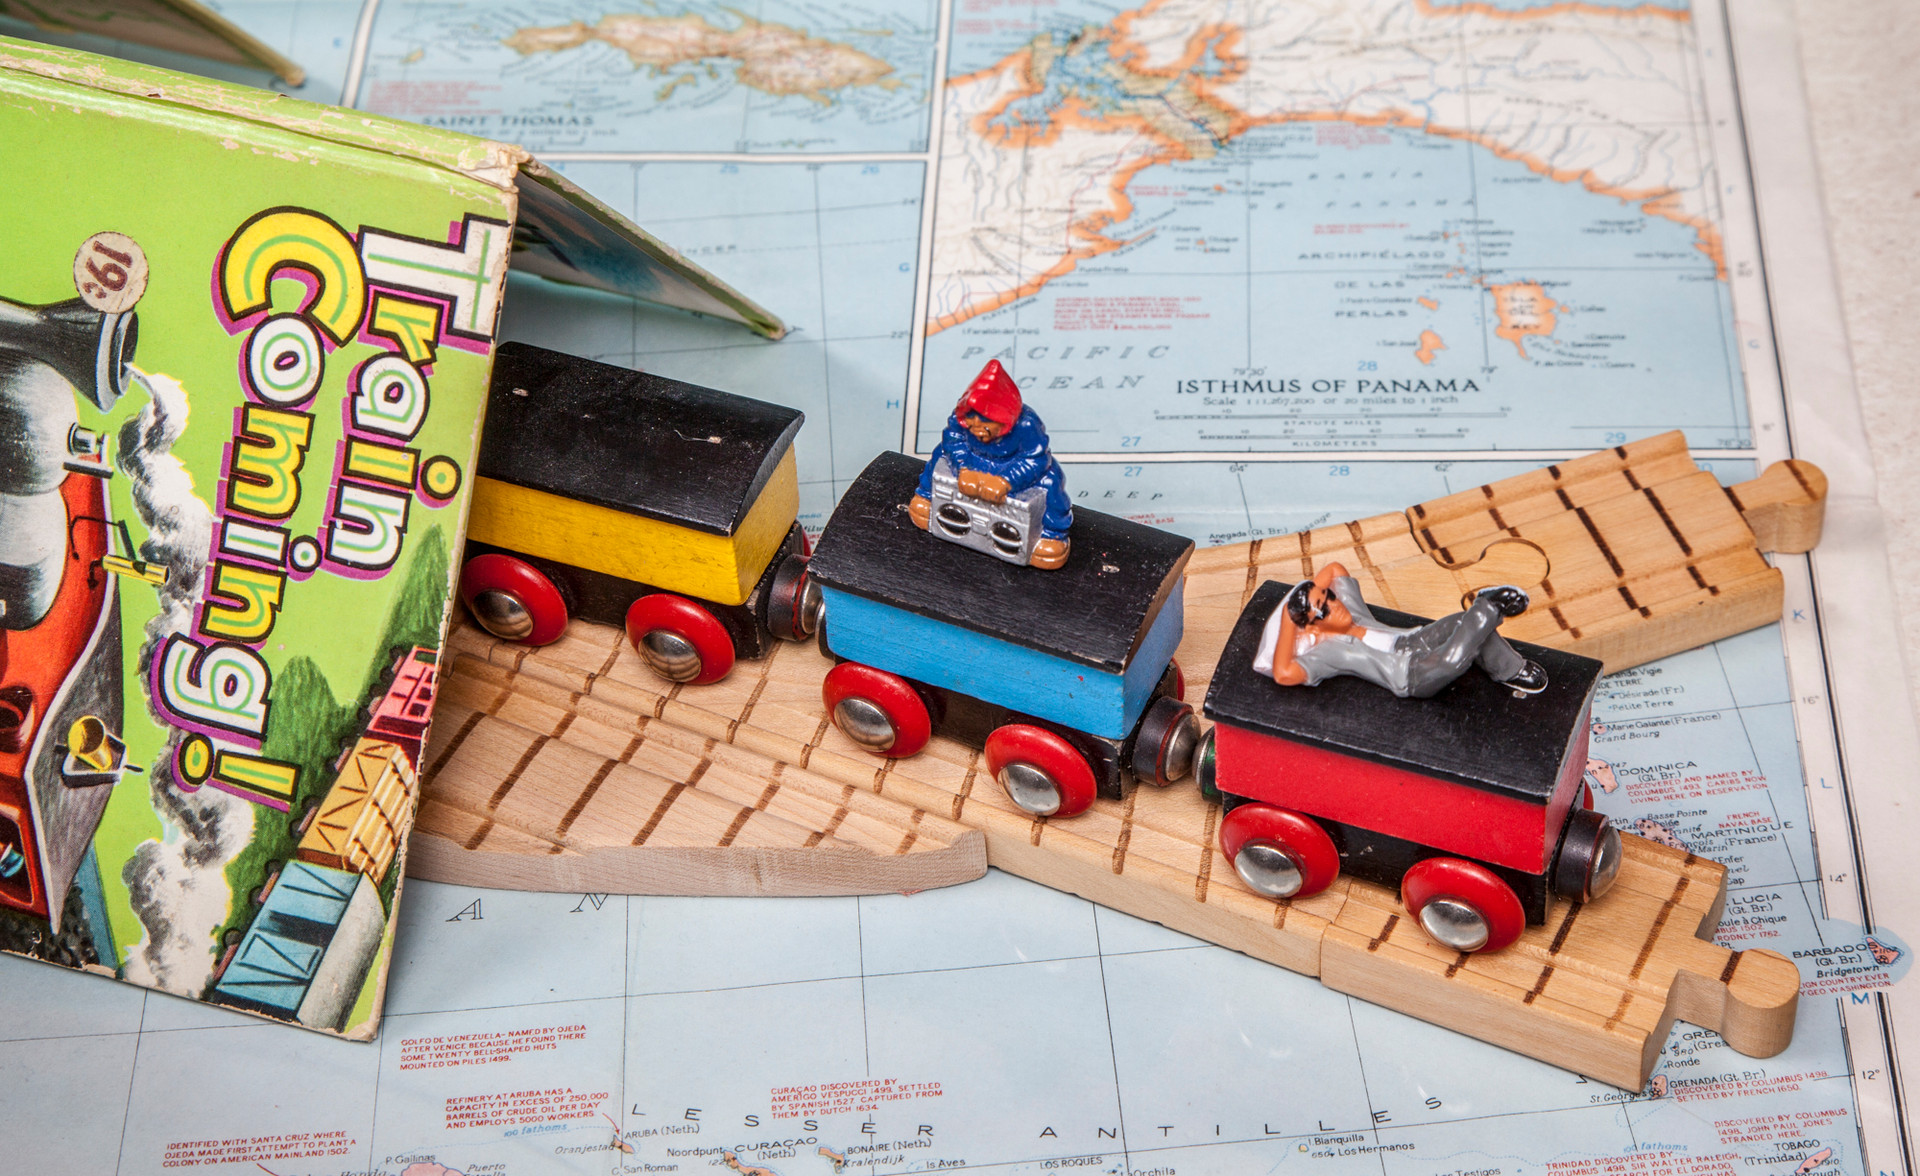 Close-up of train's start in Honduras with Homies figures riding on train tops.